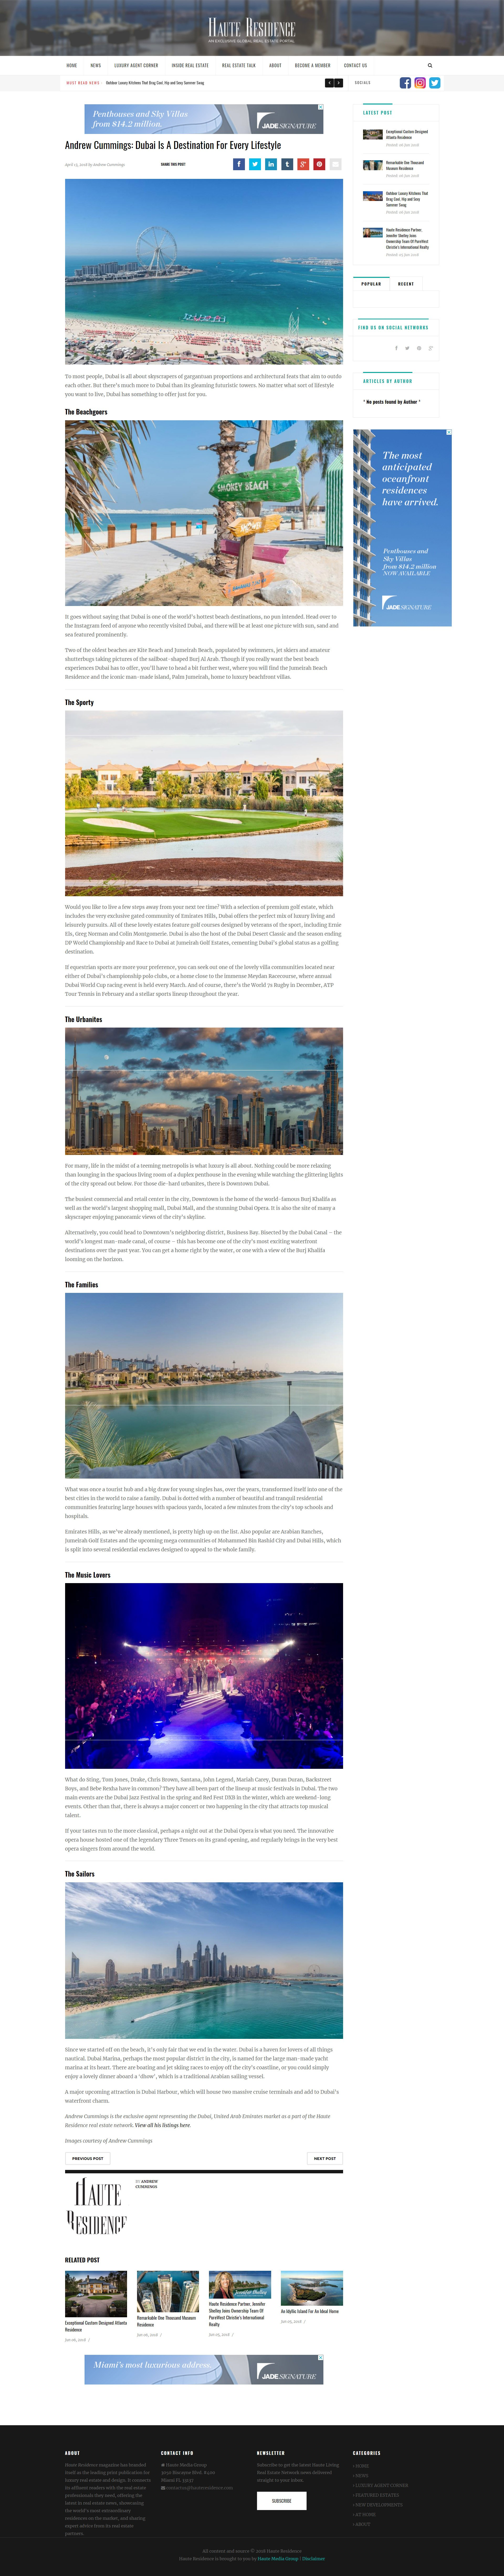 Andrew Cummings - Dubai Is A Destination For Every Lifestyle